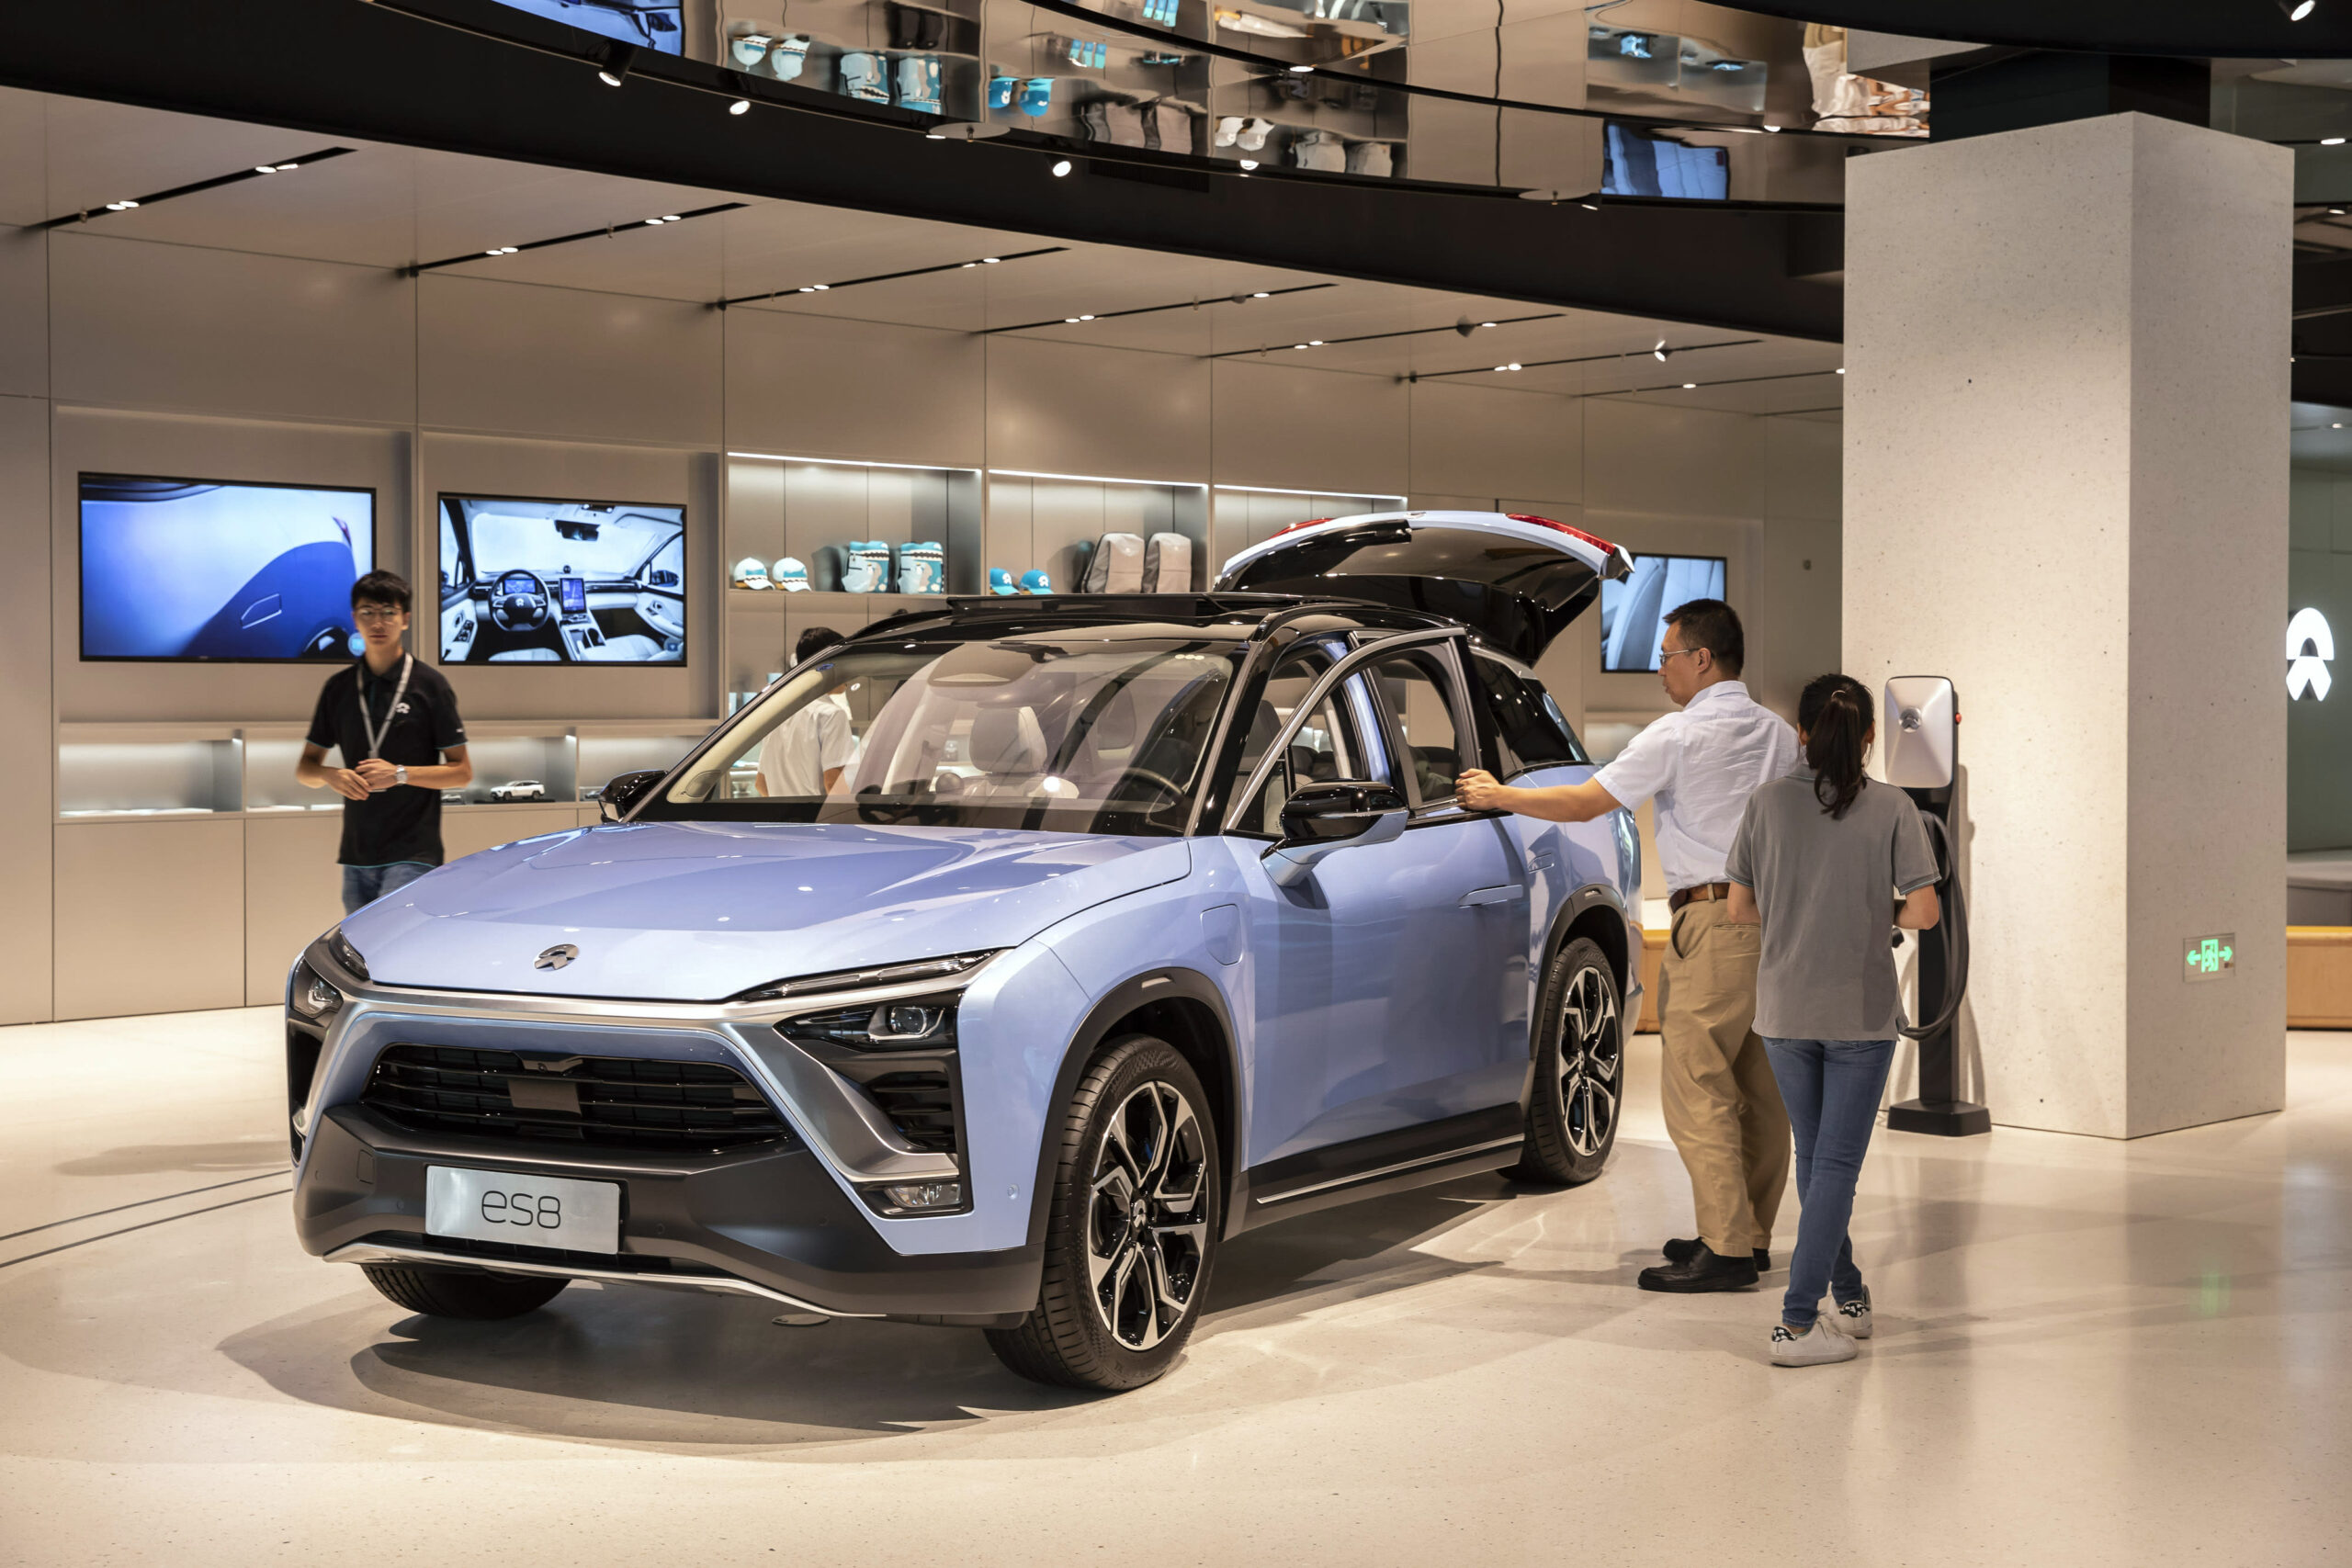 Nio Nyse Nio Shares Tag Another All Time High As The Ceo Hints At A 900 Kilometer Range Battery And The Company Reports Record Shattering Deliveries For October 2020